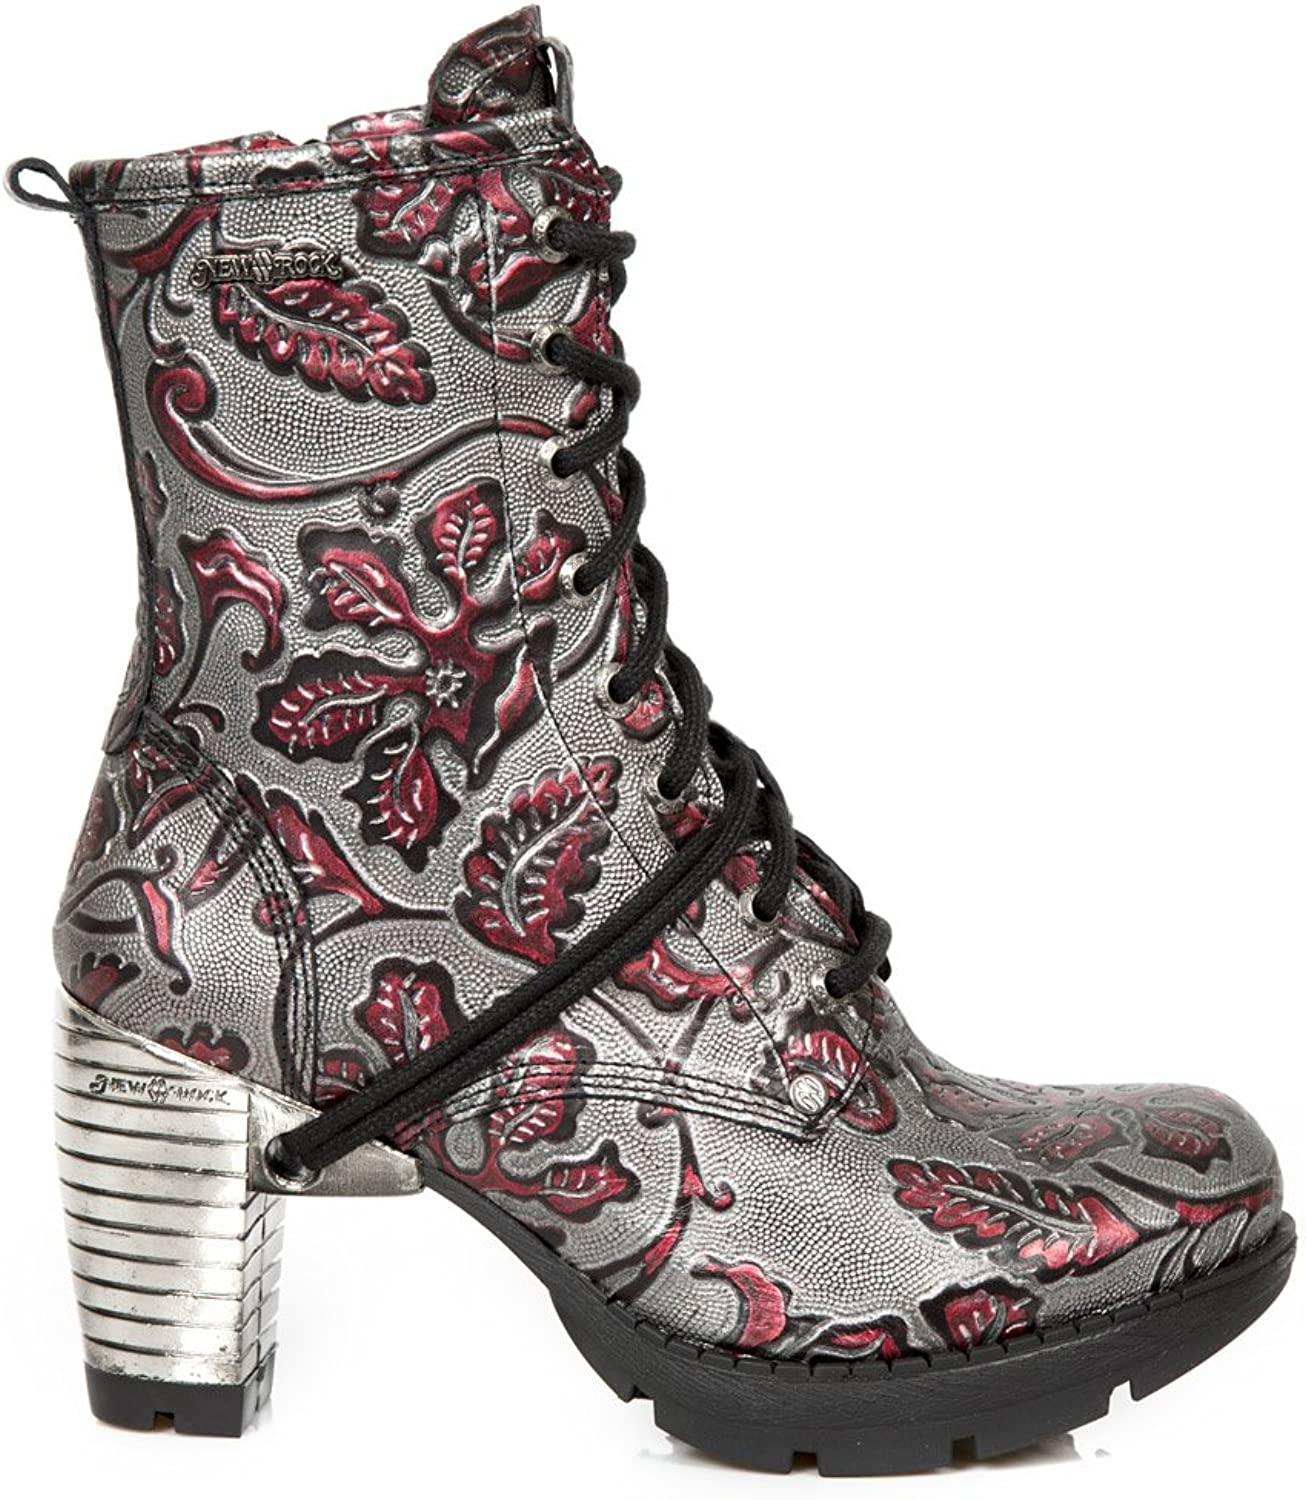 New Rock NR M.TR001 S6 Red - Boots, Trail, Women